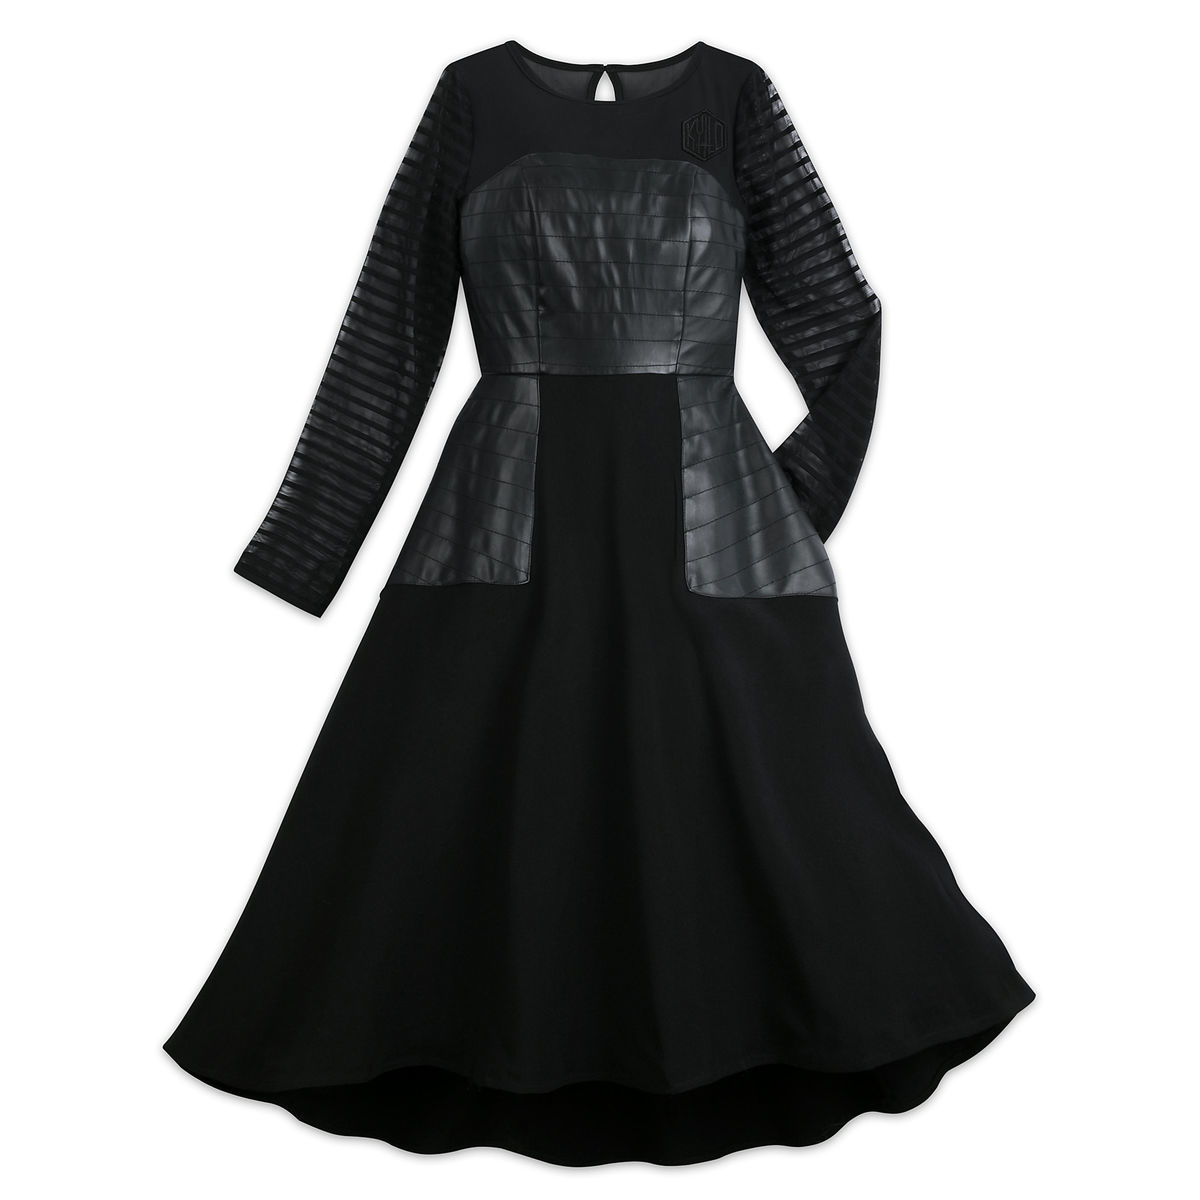 fccf53071e Product Image of Kylo Ren Dress for Women by Her Universe   1